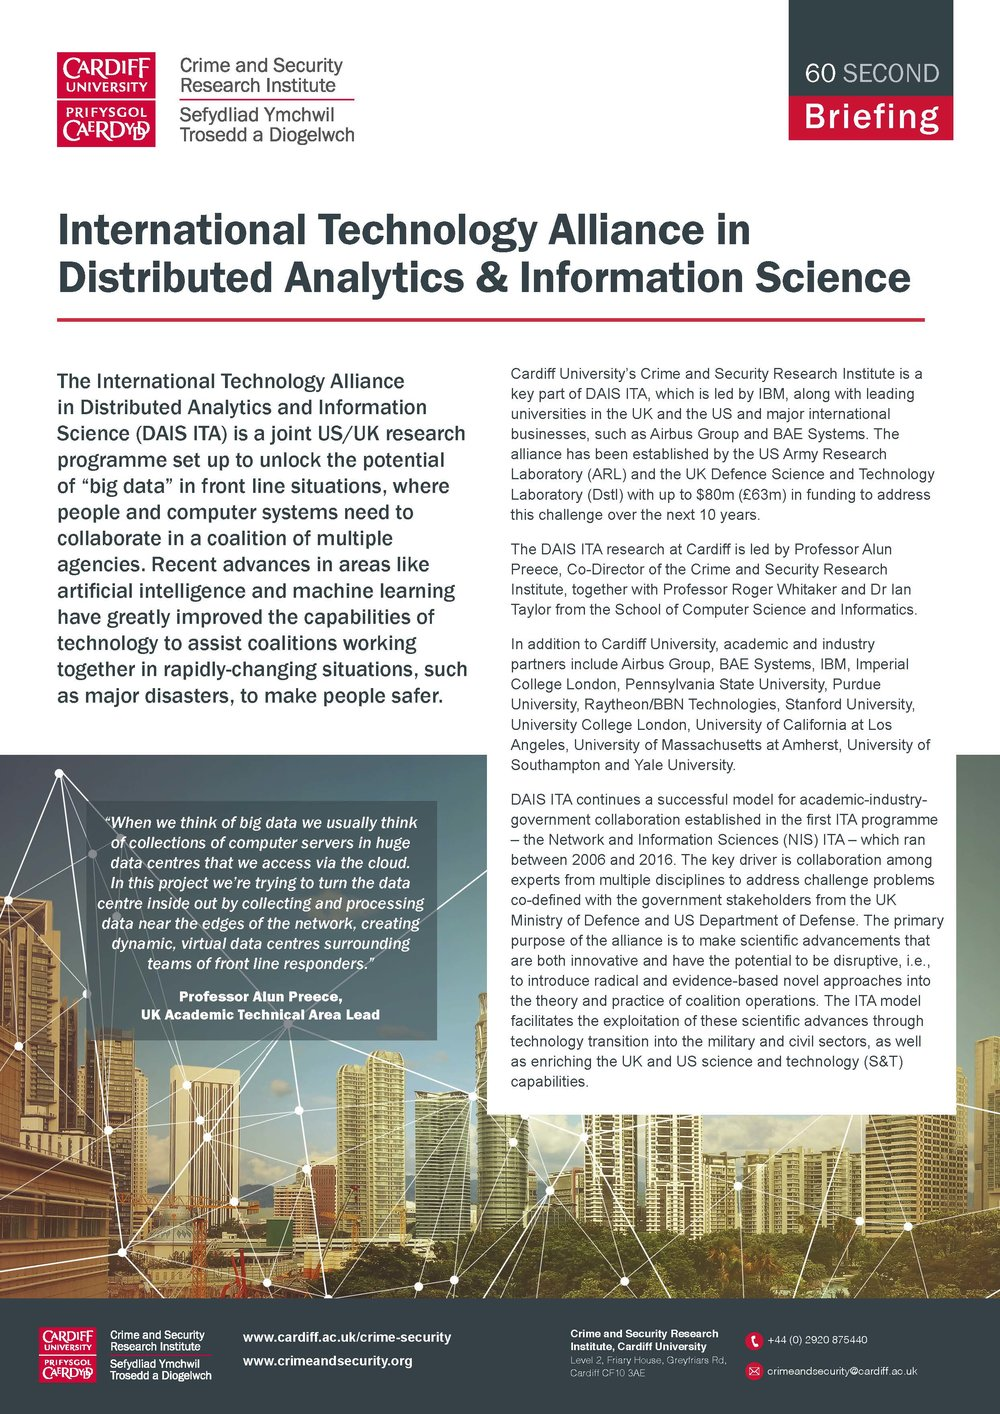 International Technology Alliance in Distributed Analytics & Information Science [ITA DAIS] -